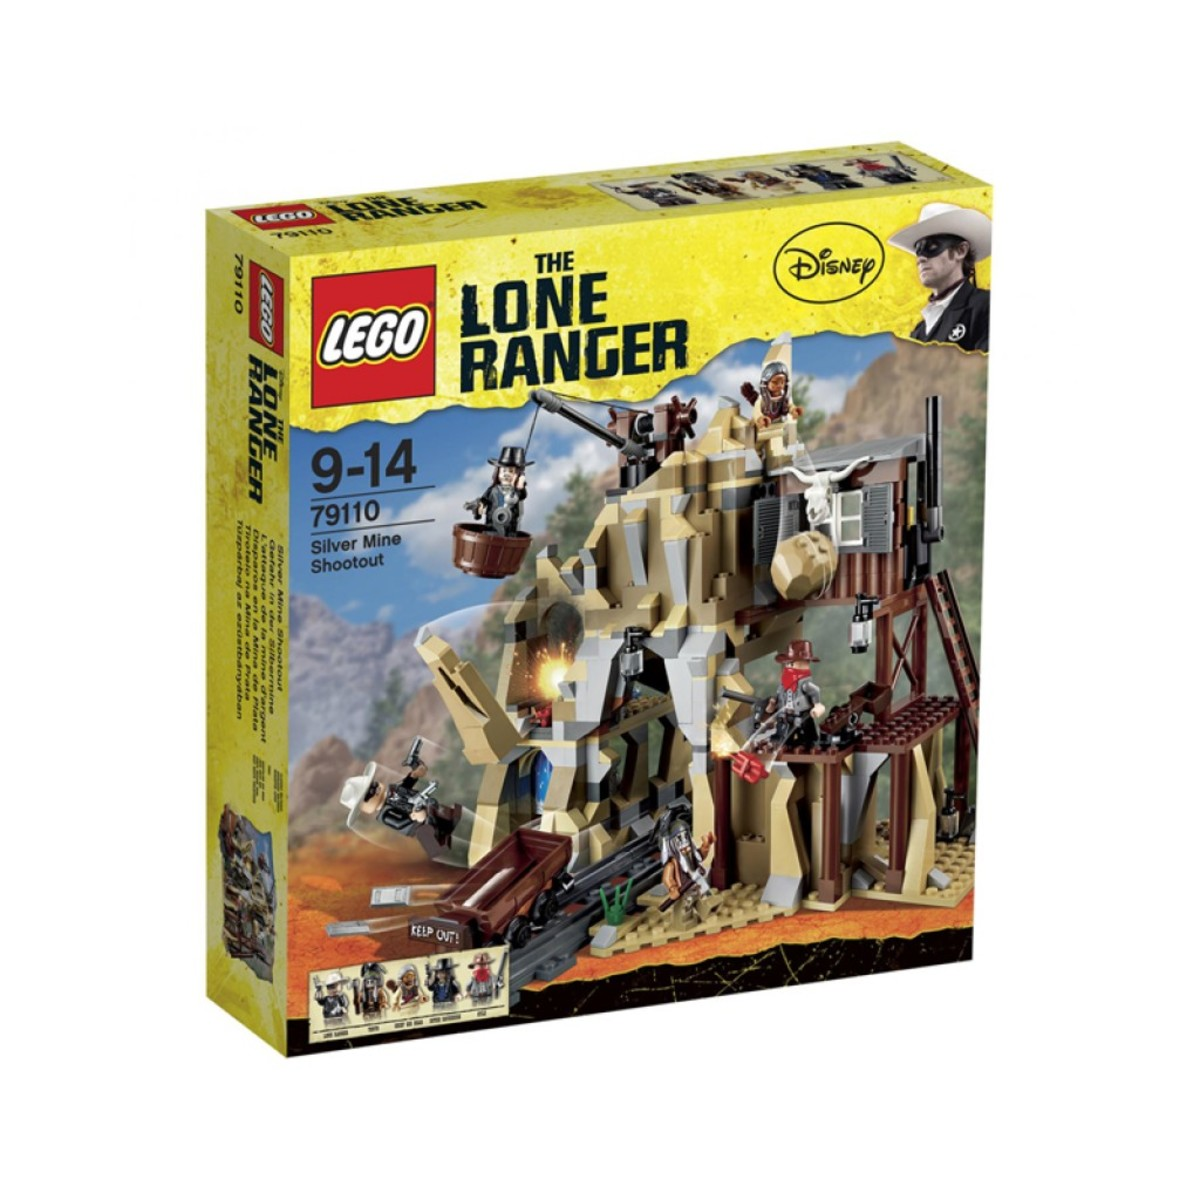 LEGO The Lone Ranger Silver Mine Shootout 79110 Box